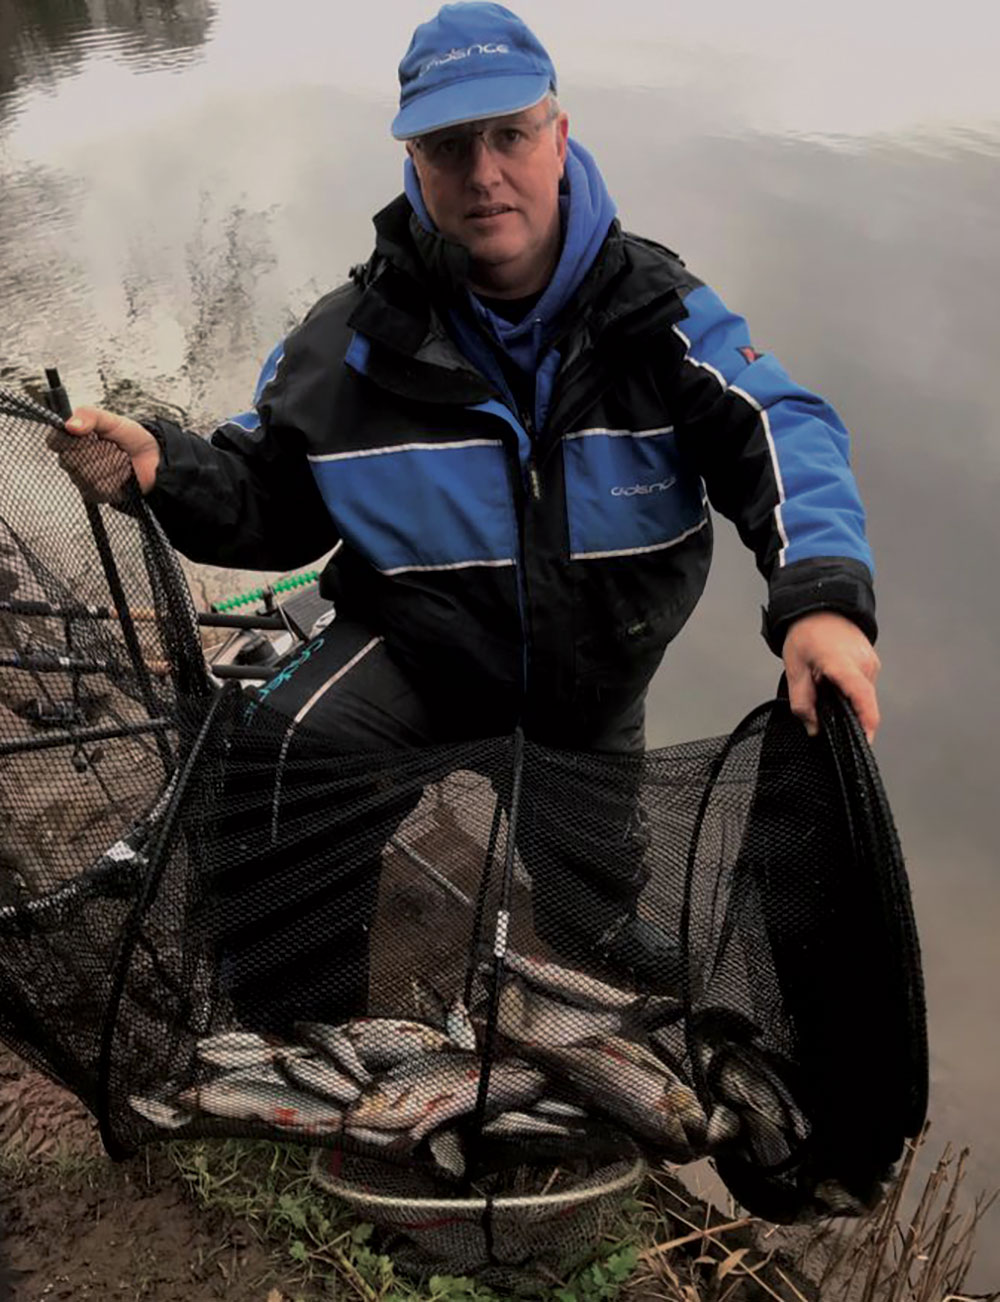 River Float Fishing with Punched Bread: Alan with a stunning bread punch net of Ribble roach, chub and dace taken in a four-hour session on a bolo approach with the float fished some 40 yards out down the middle of the river.